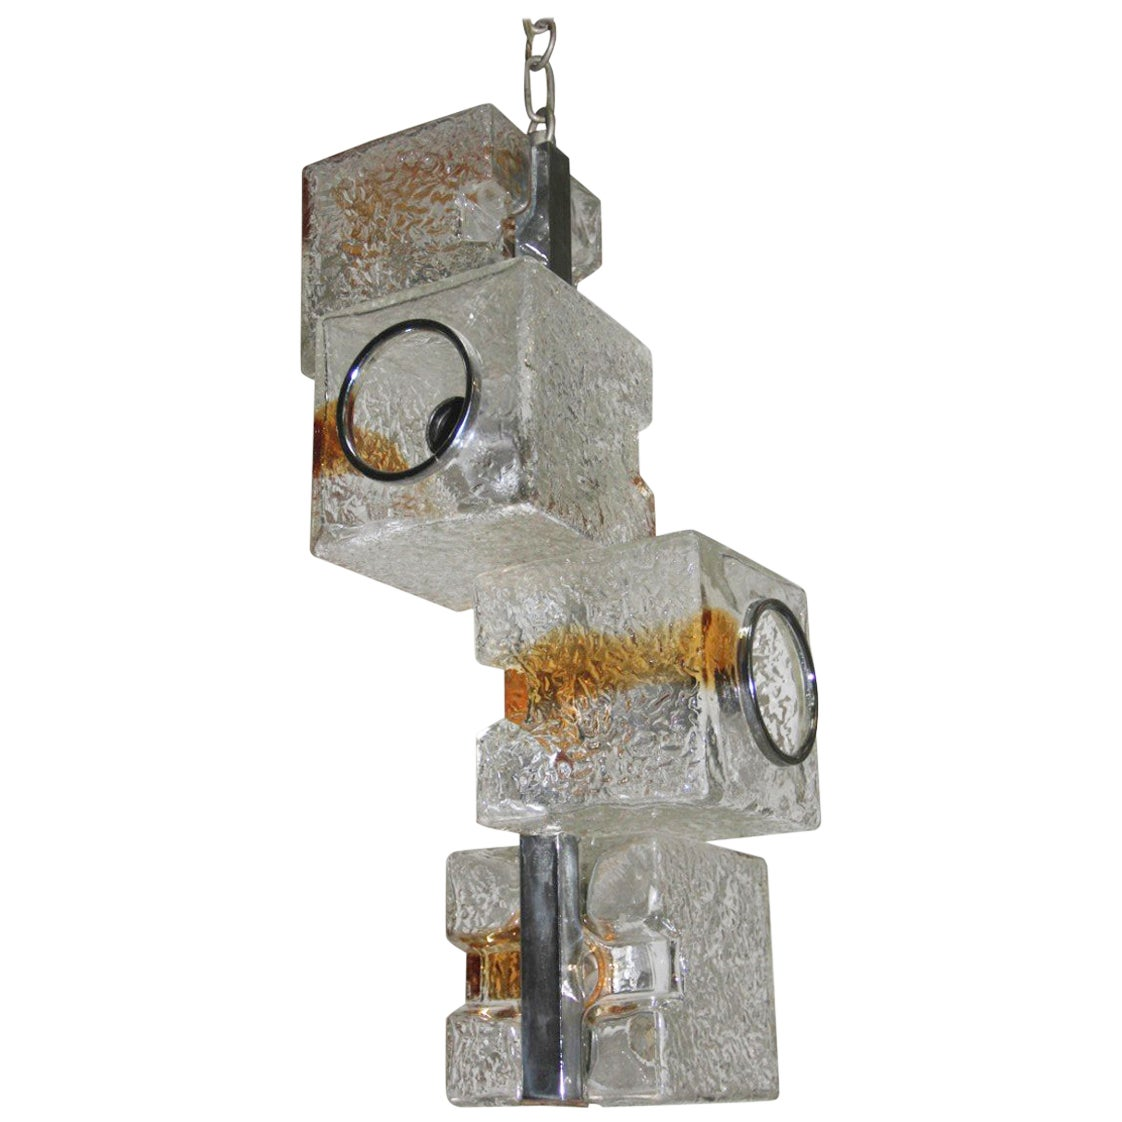 VeArt Sculpture Cube Design Chandelier 1970s Murano Art Glass